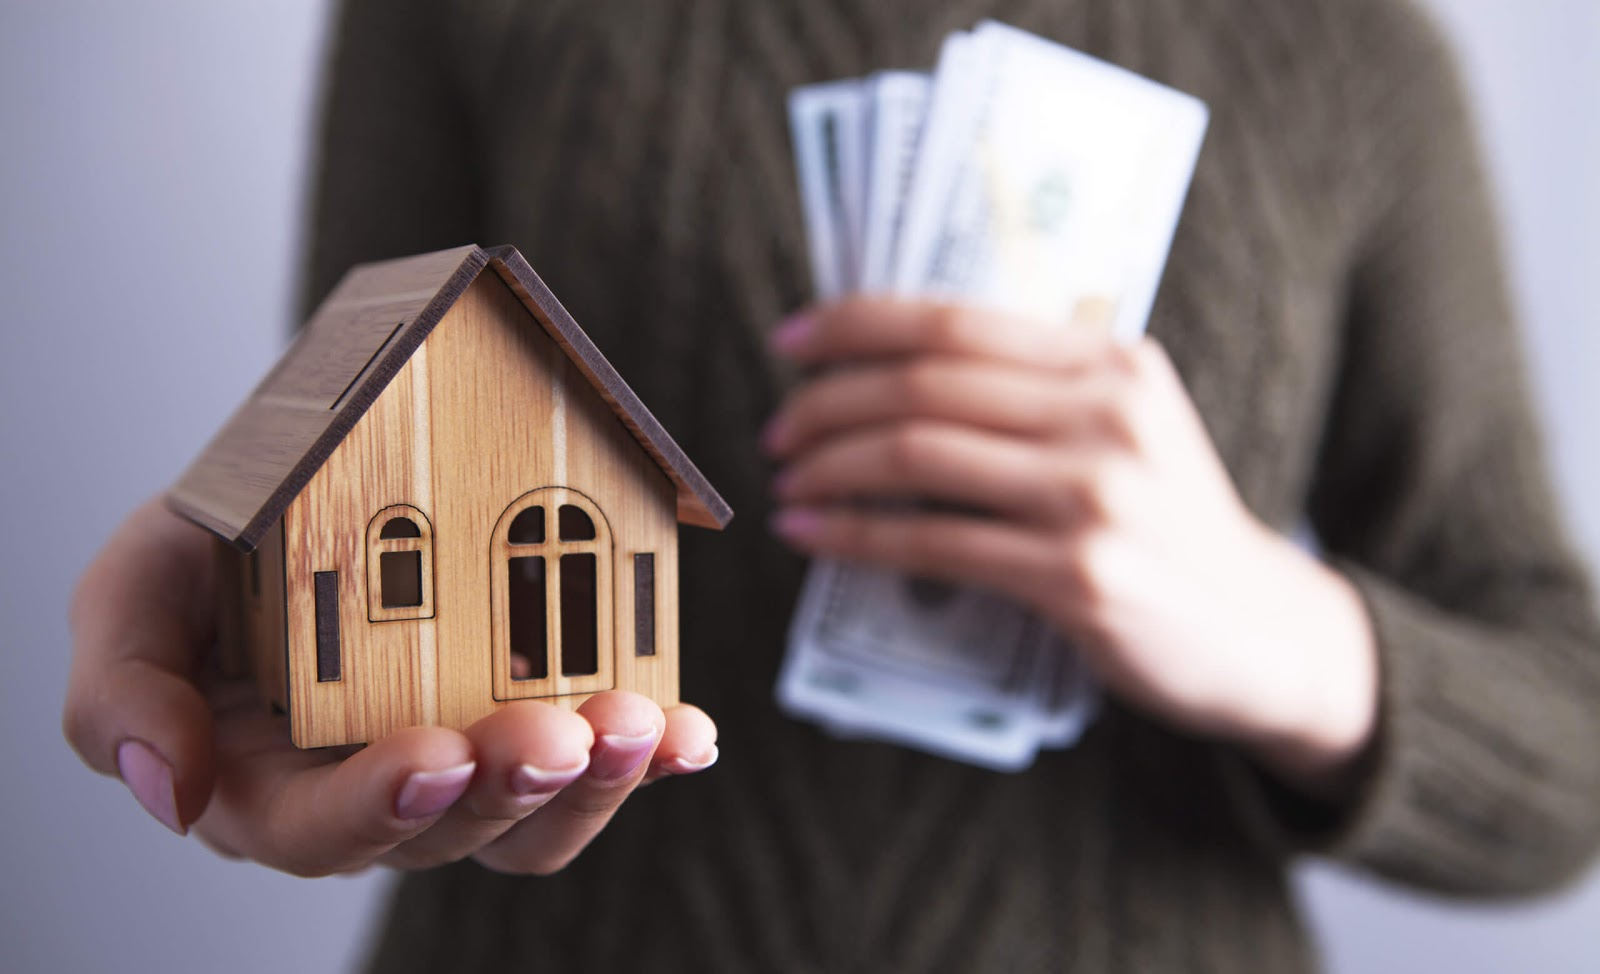 Person holding cash in one hand and holding out a mini-house in the other hand